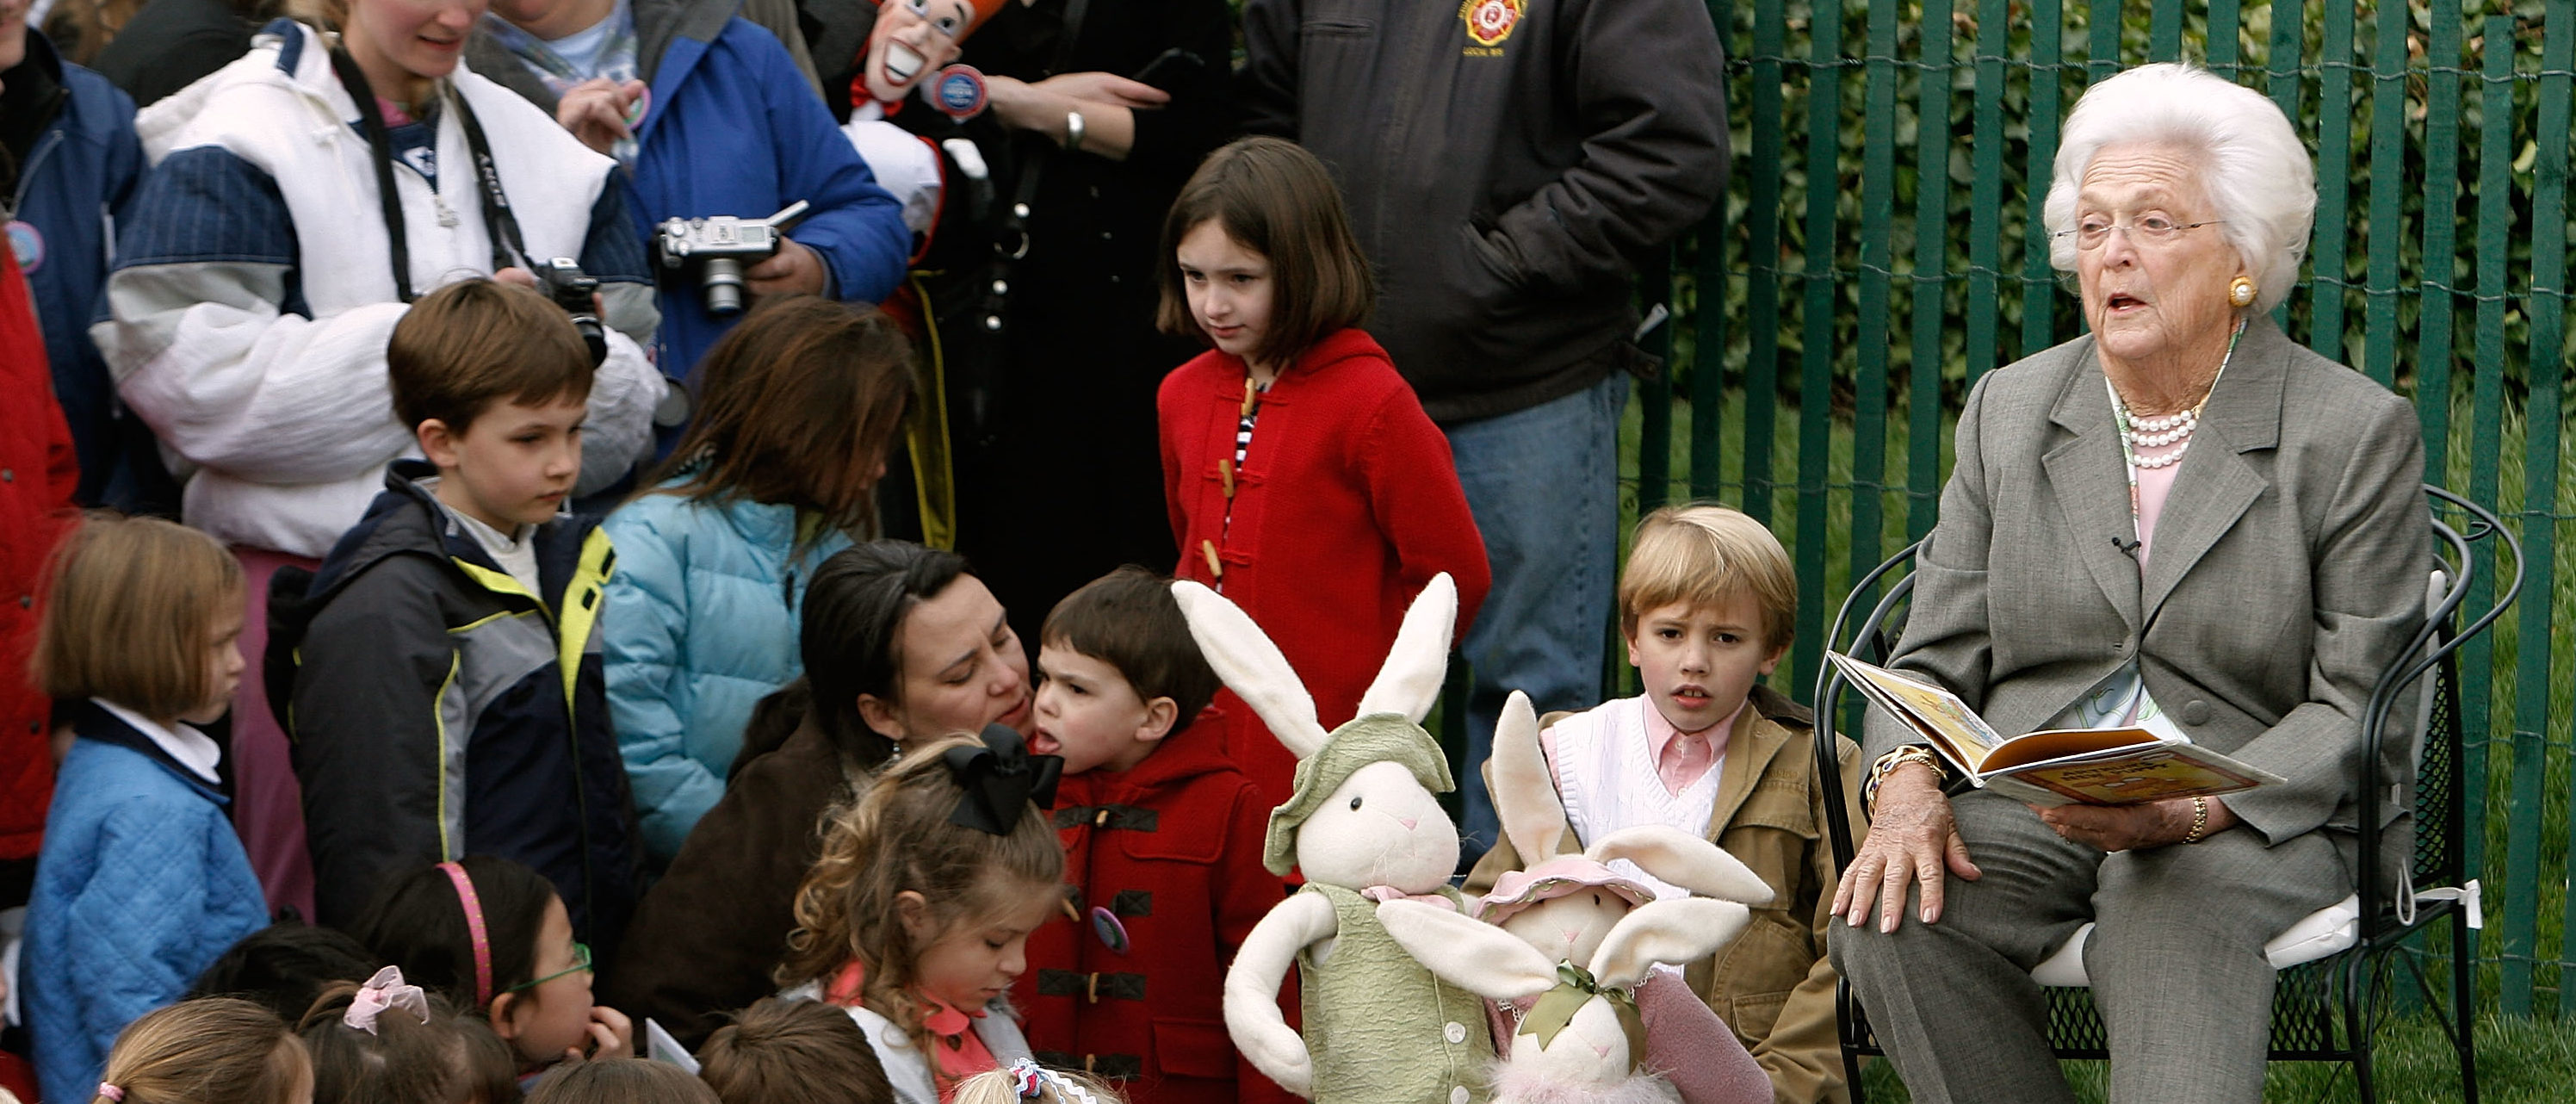 """WASHINGTON - MARCH 24: Former first lady and mother of President George W. Bush, Barbara Bush (R) reads """"Arthur's New Puppy"""" during the annual Easter Egg Roll on the South Lawn of the White House March 24, 2008 in Washington, DC. The annual event was started by President Rutherford B. Hayes in 1878. (Photo by Chip Somodevilla/Getty Images)"""